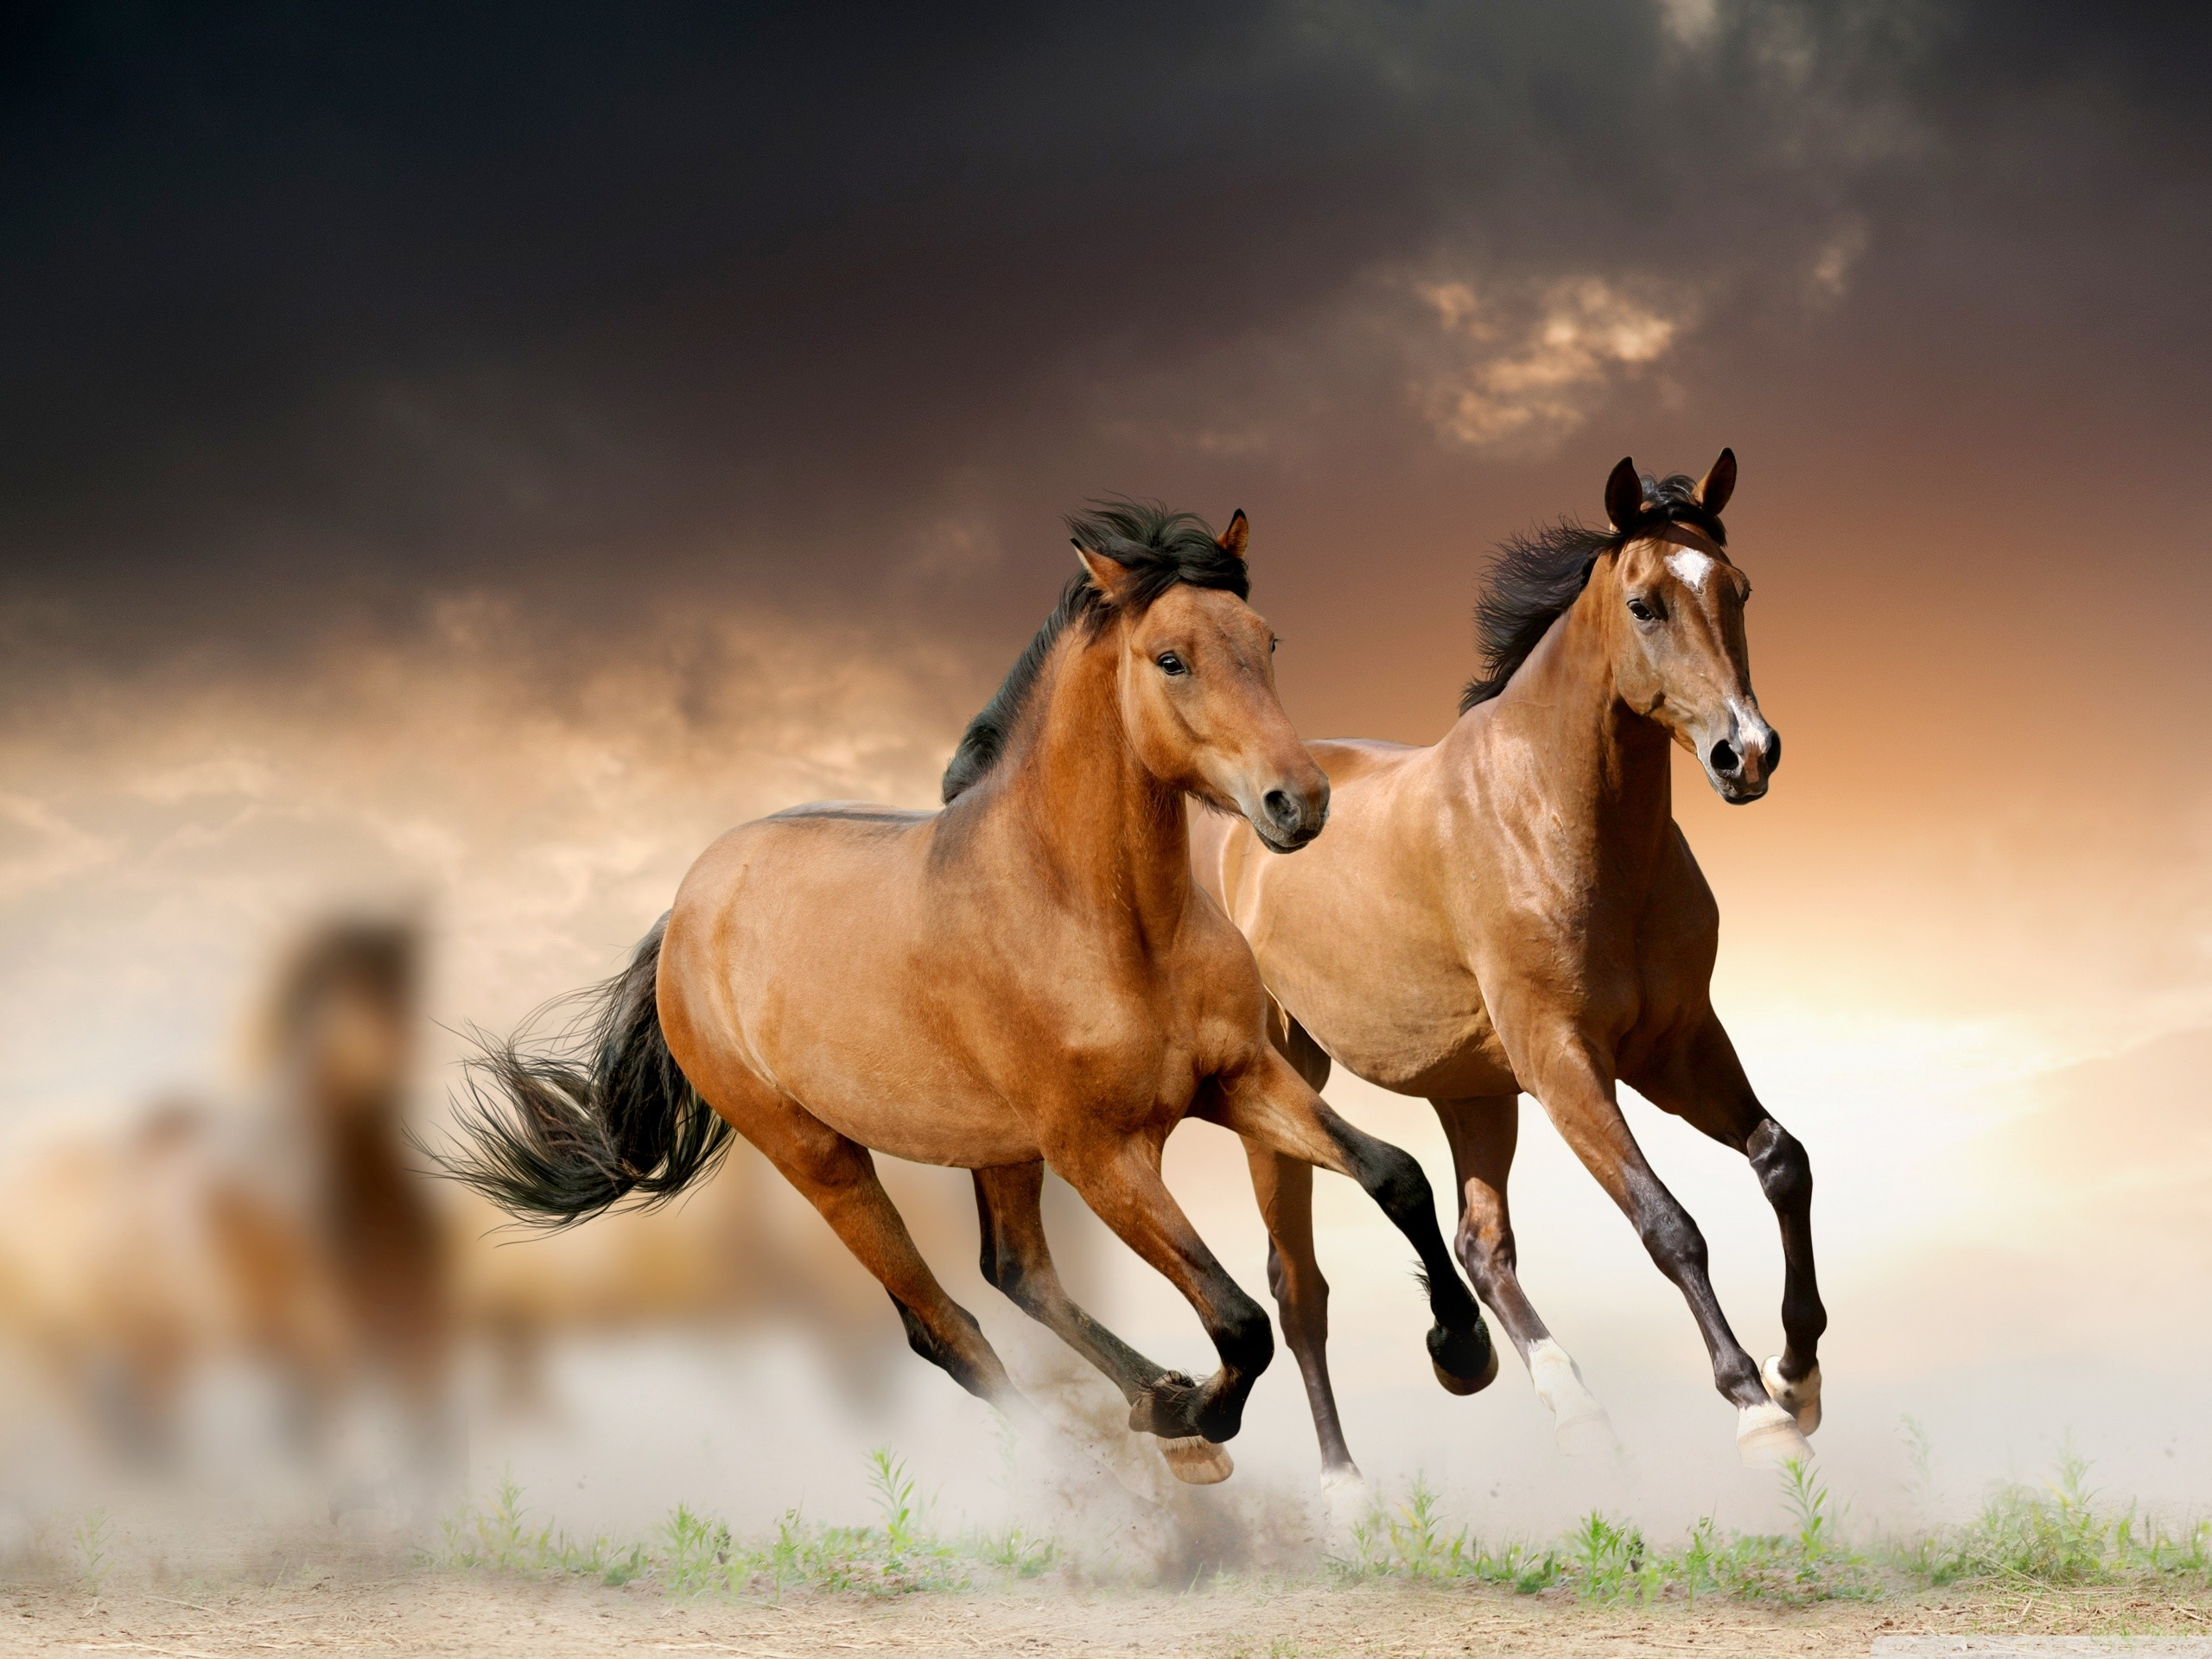 Running Horses Wallpaper 63 Images